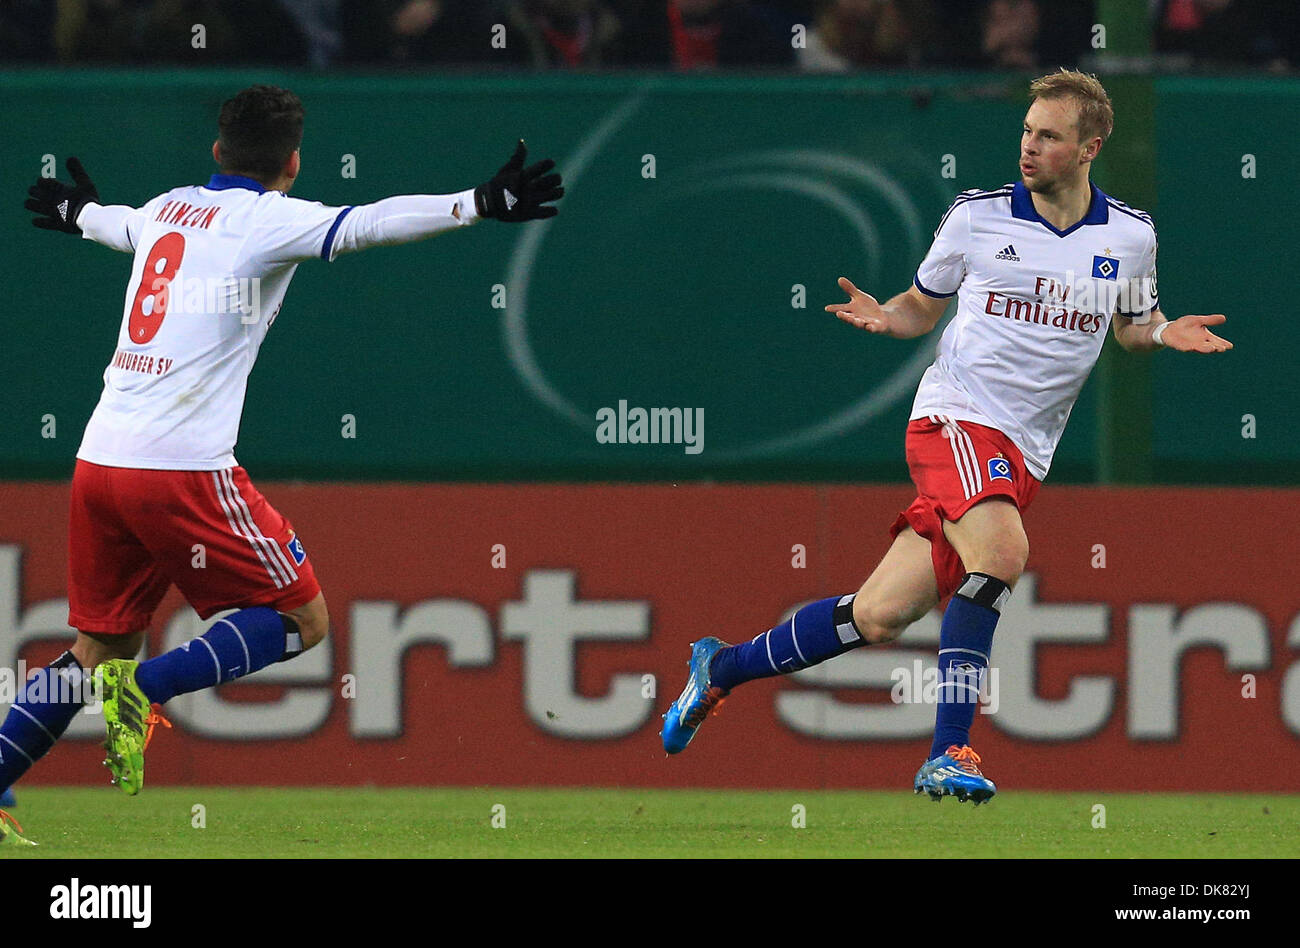 Hamburg, Germany. 3rd Dec 2013.Hamburg's Maximilian Beister (R) cheers his 1-0 goal together with team mate Tomas Rincon during the DFB cup round of 16 soccer match Hamburger SV vs 1. FC Cologne at Imtech Arena. Credit:  dpa picture alliance/Alamy Live News - Stock Image